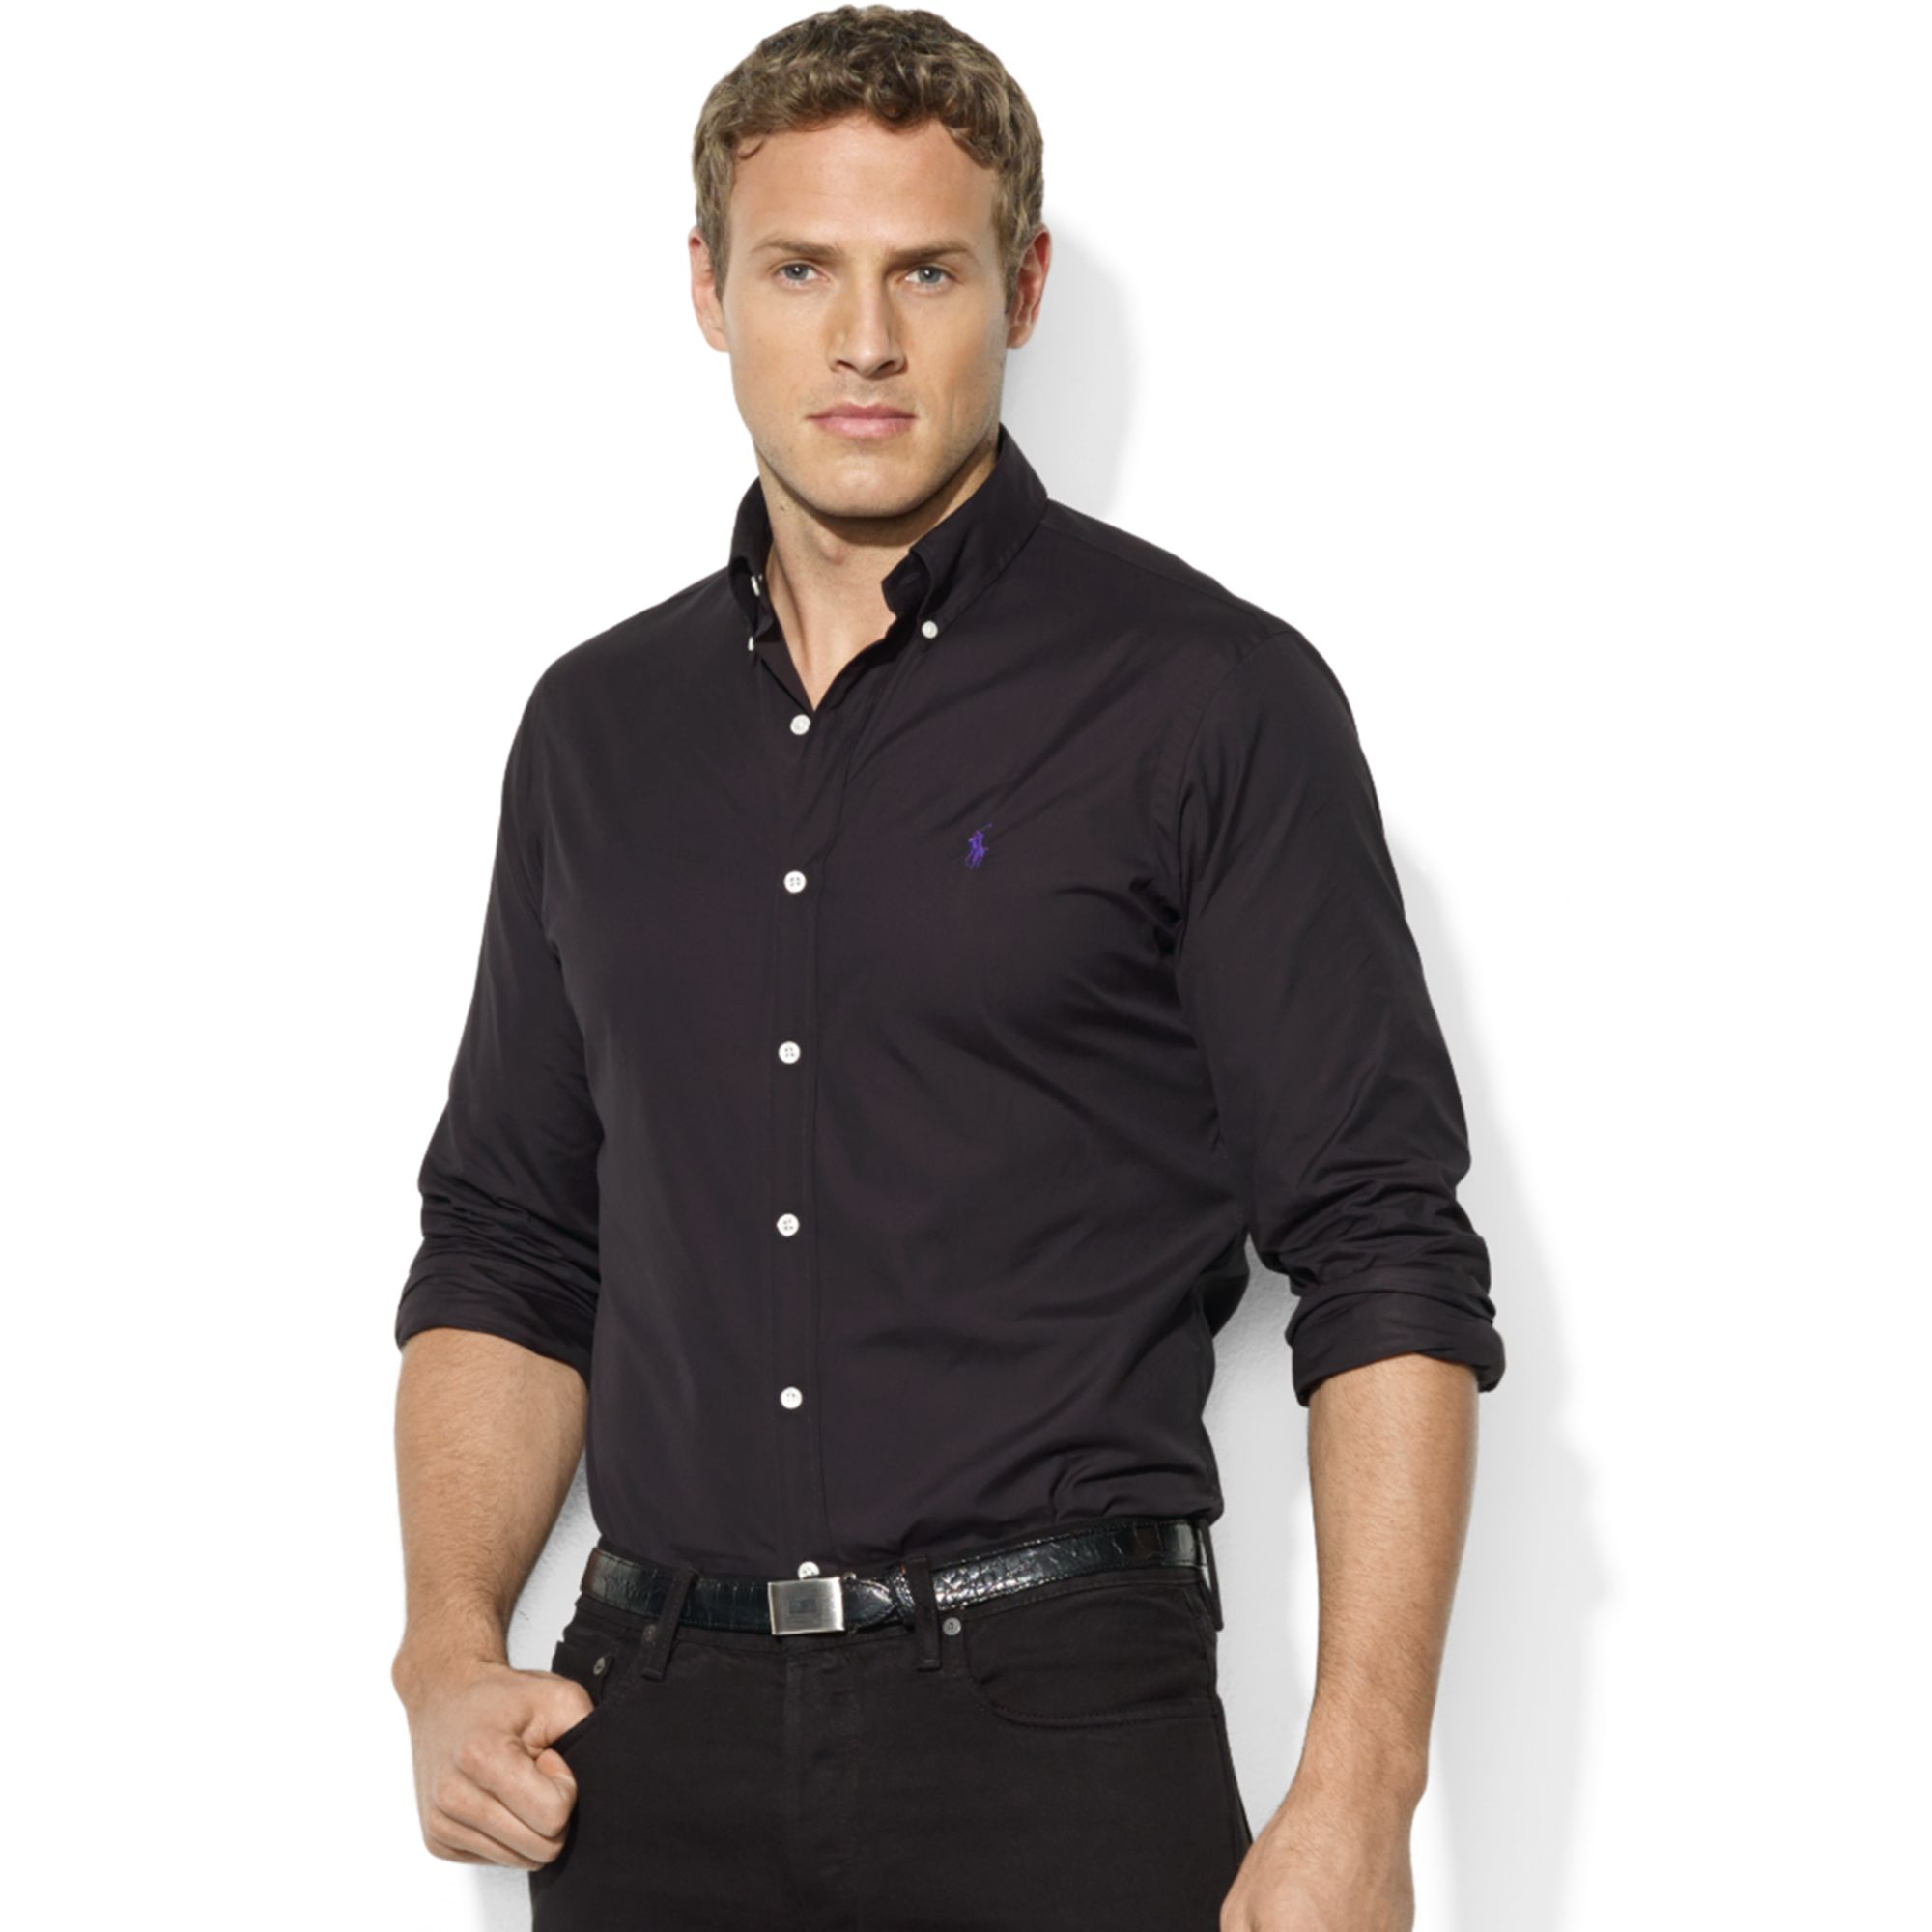 lyst ralph lauren classicfit longsleeve sueded poplin shirt in black for men. Black Bedroom Furniture Sets. Home Design Ideas